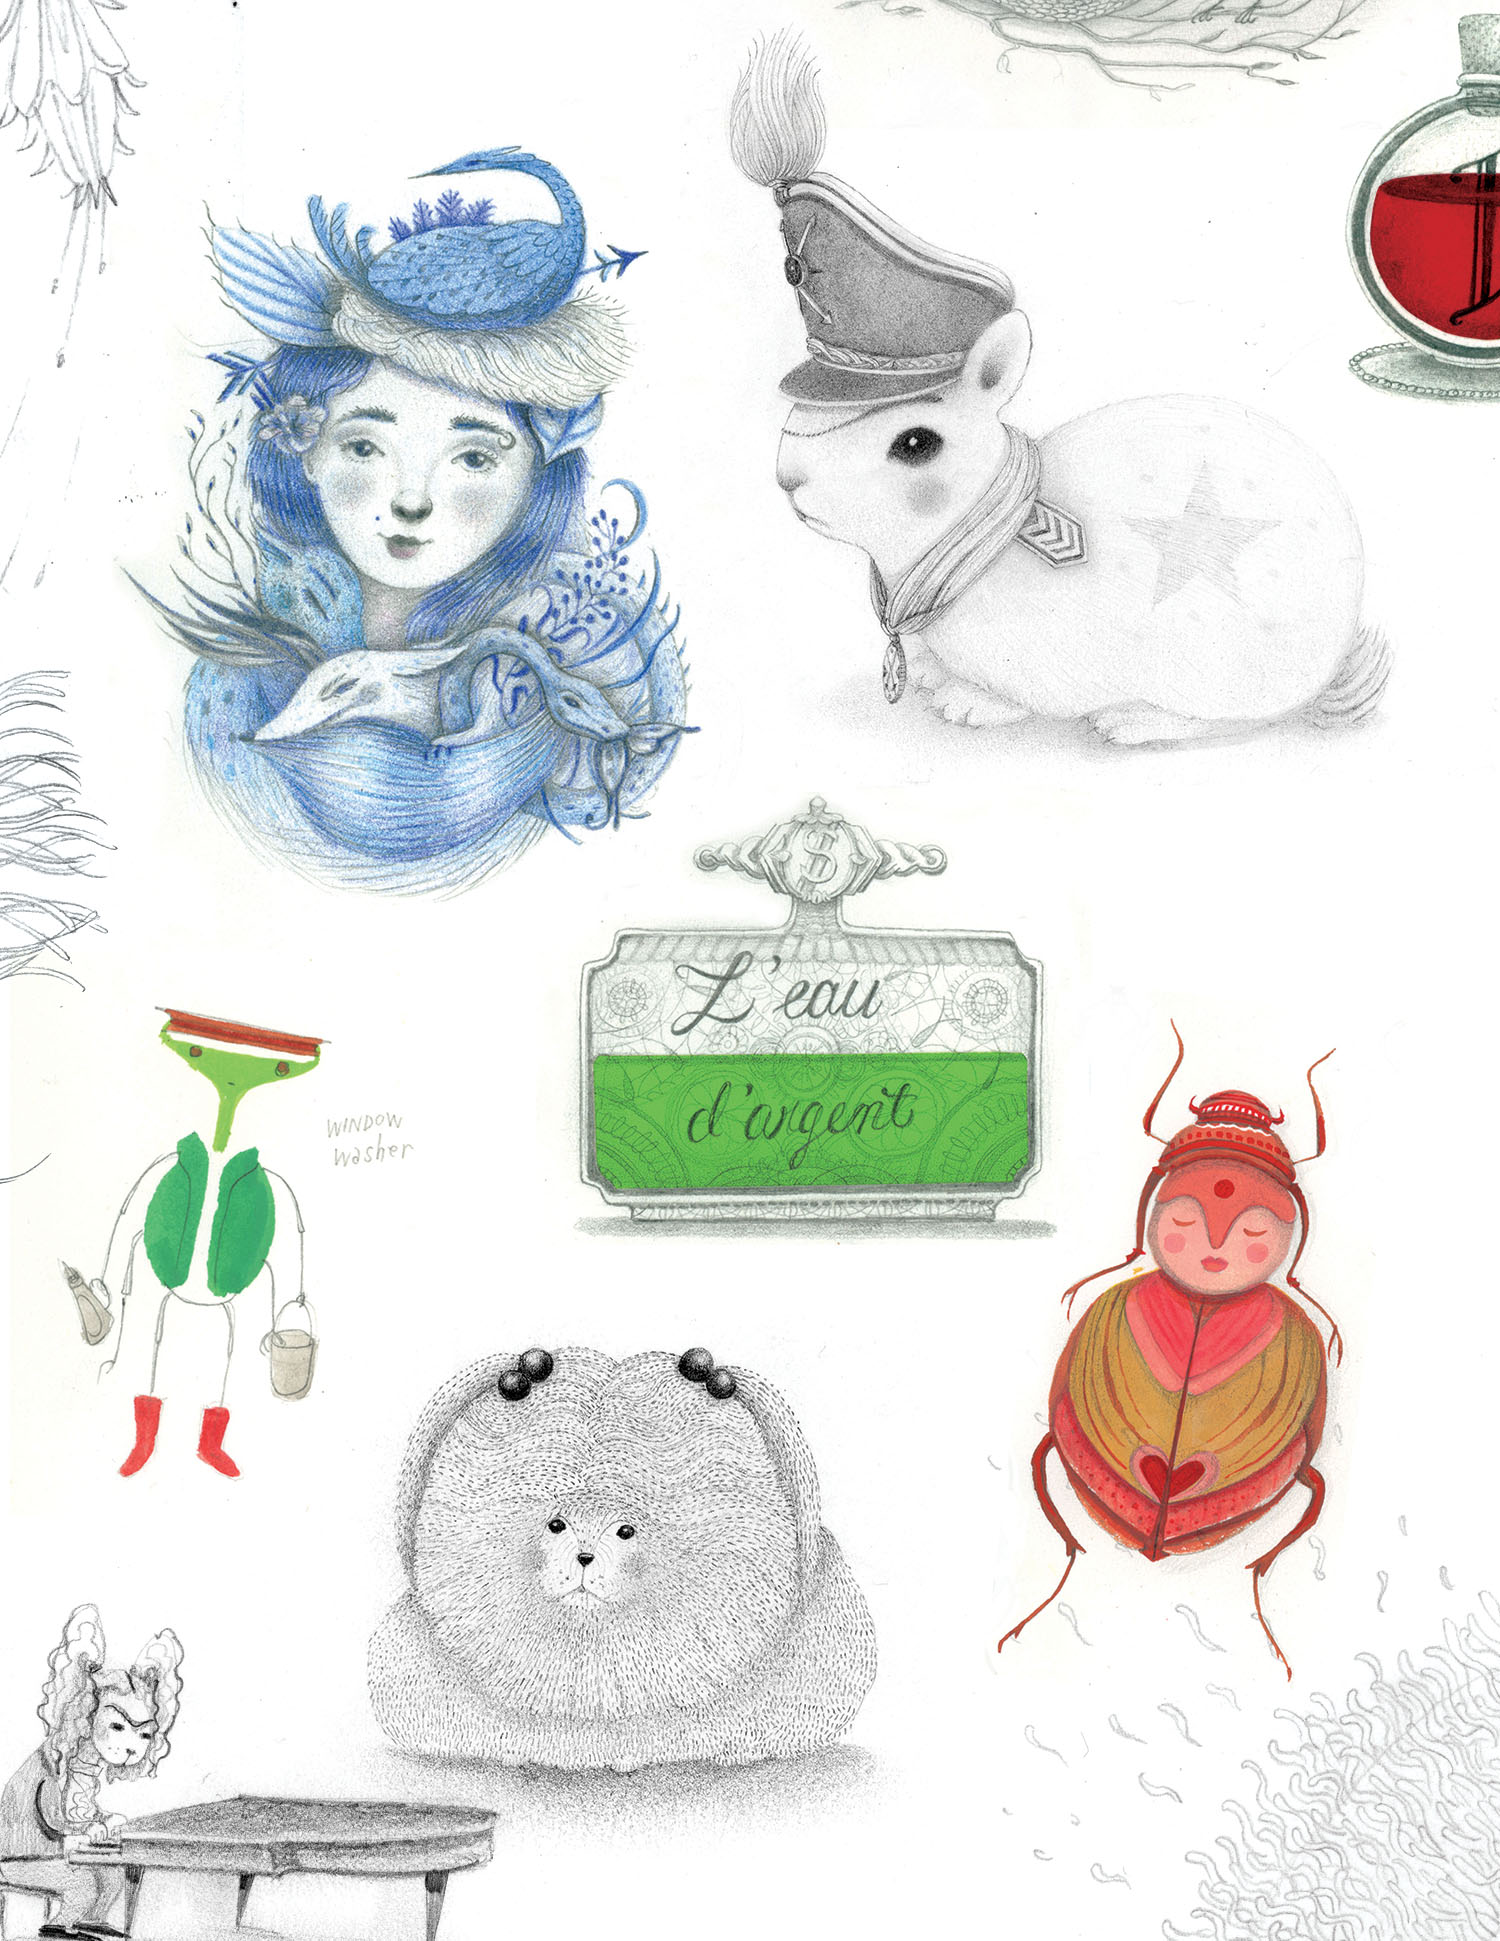 Some of my little drawings that will appear in my upcoming book project.